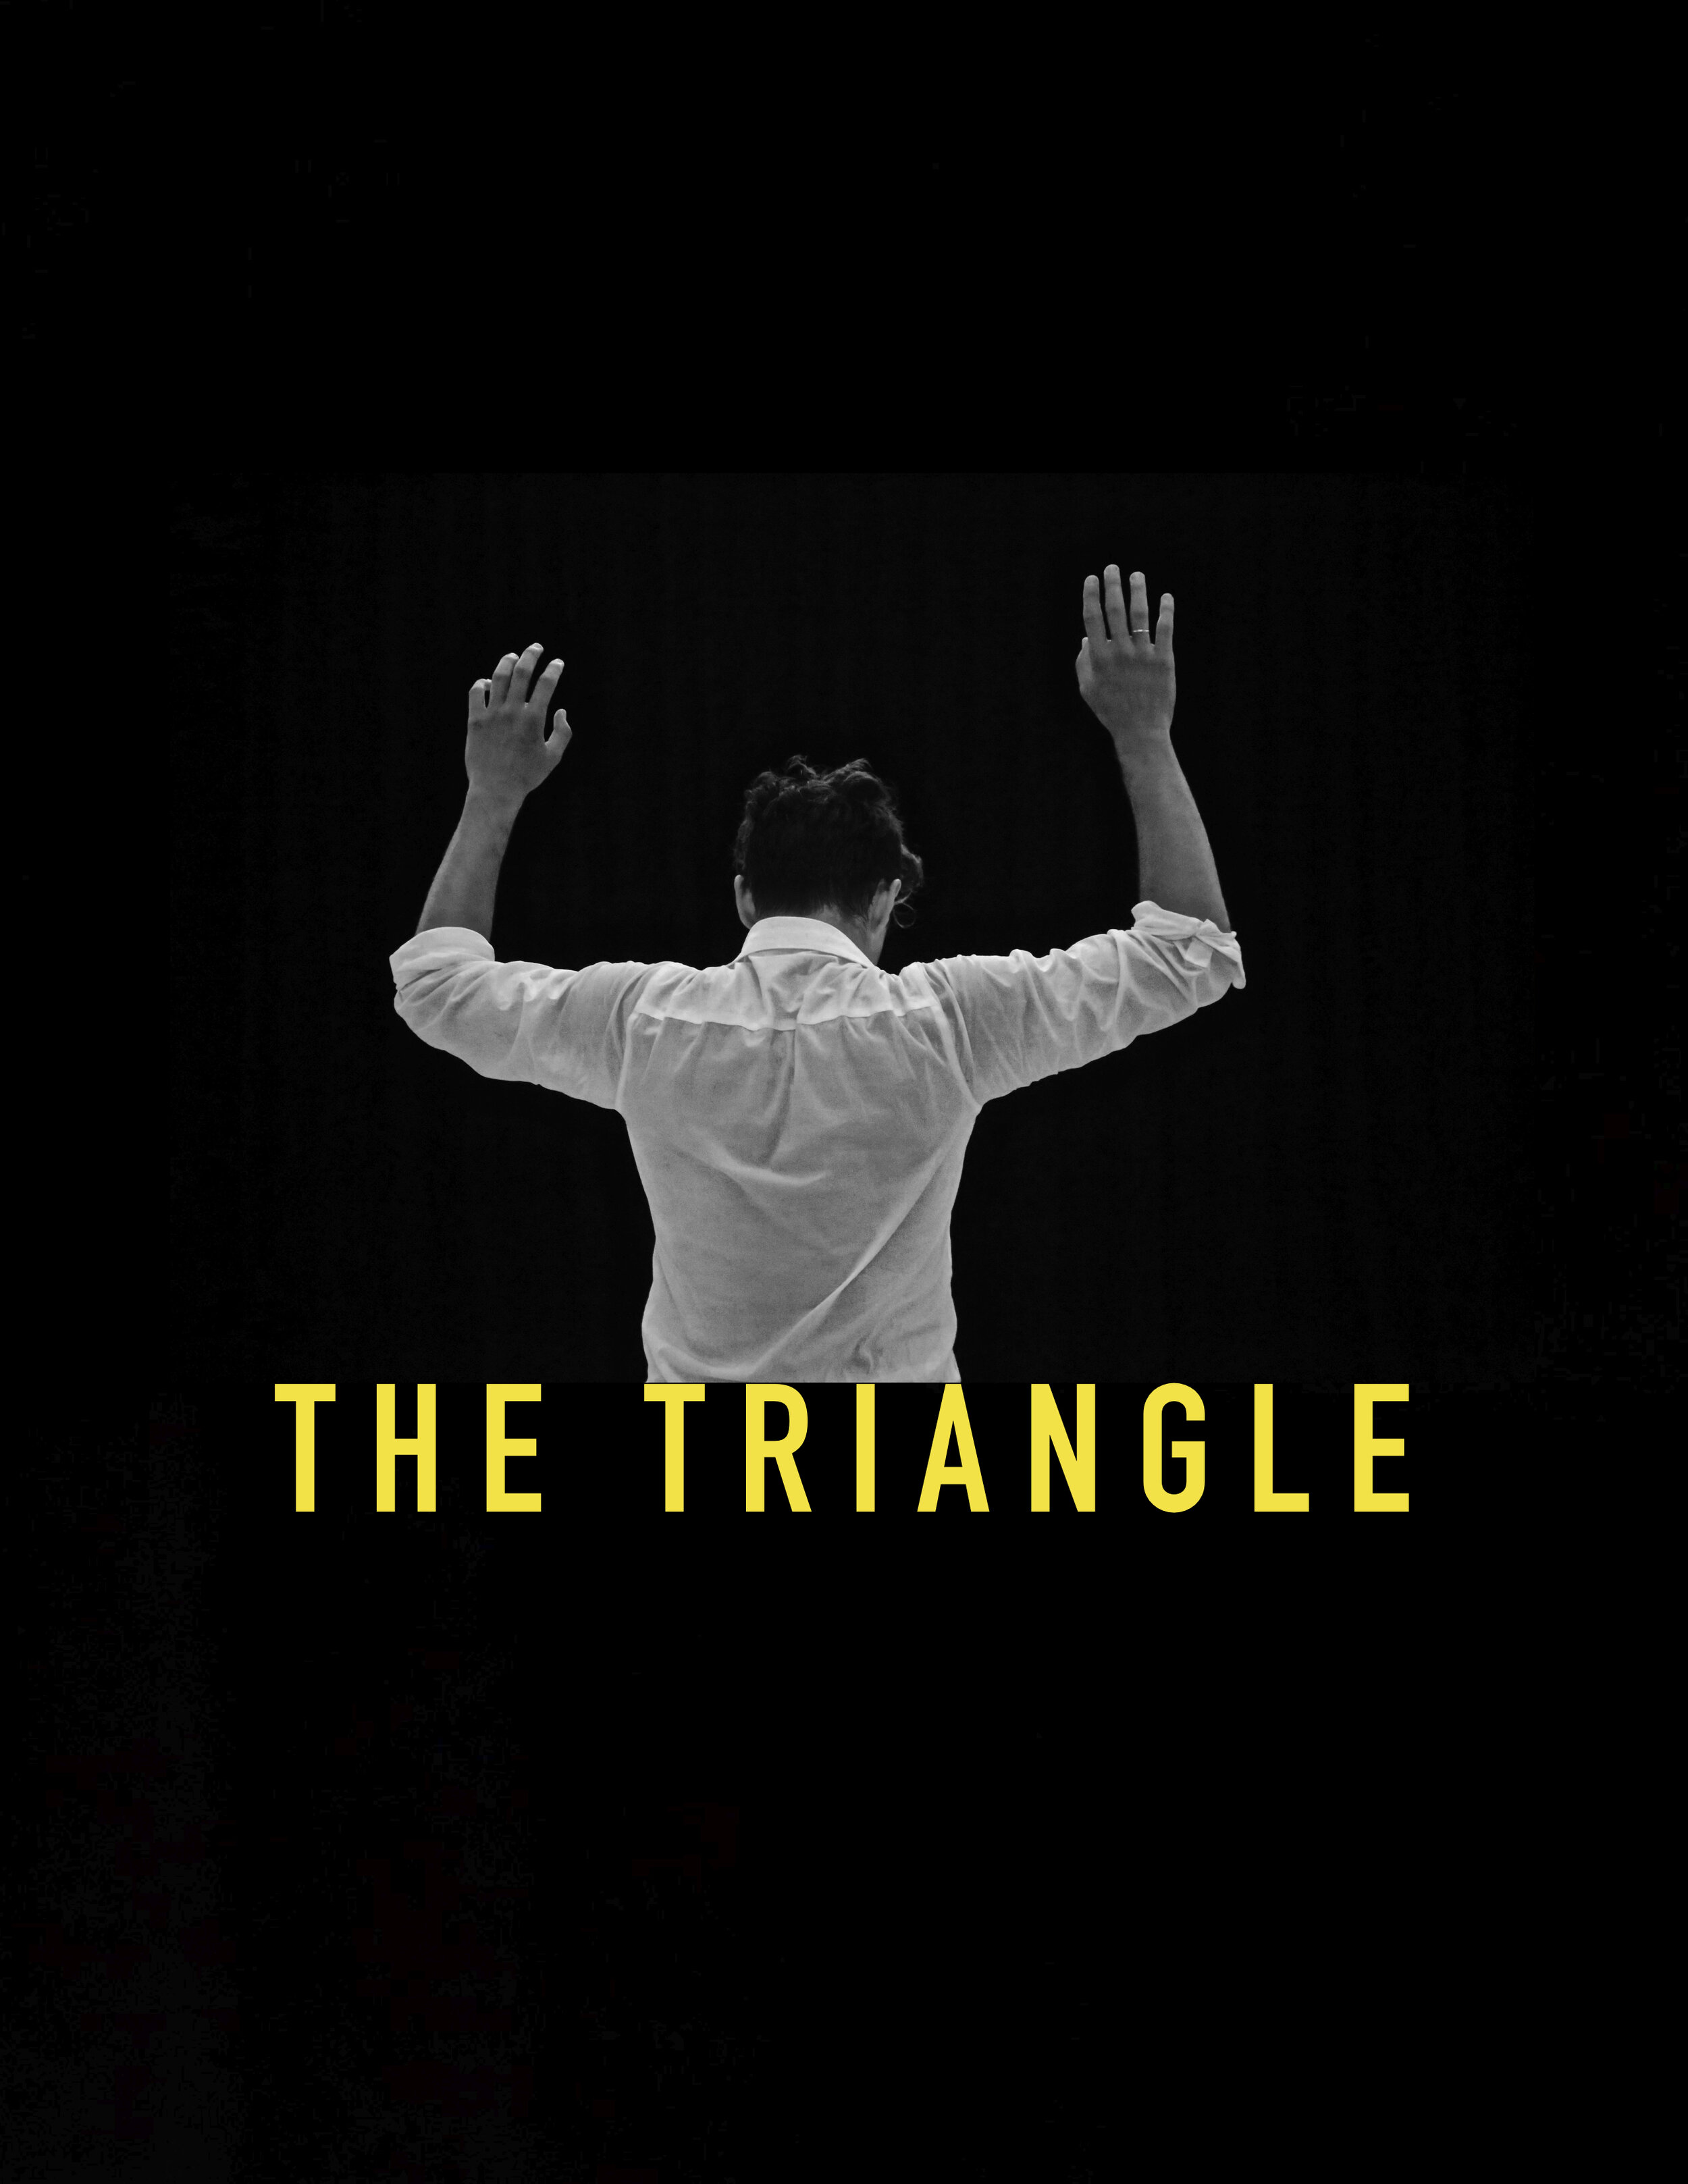 Triangle Poster from Pillow Images - David.jpg